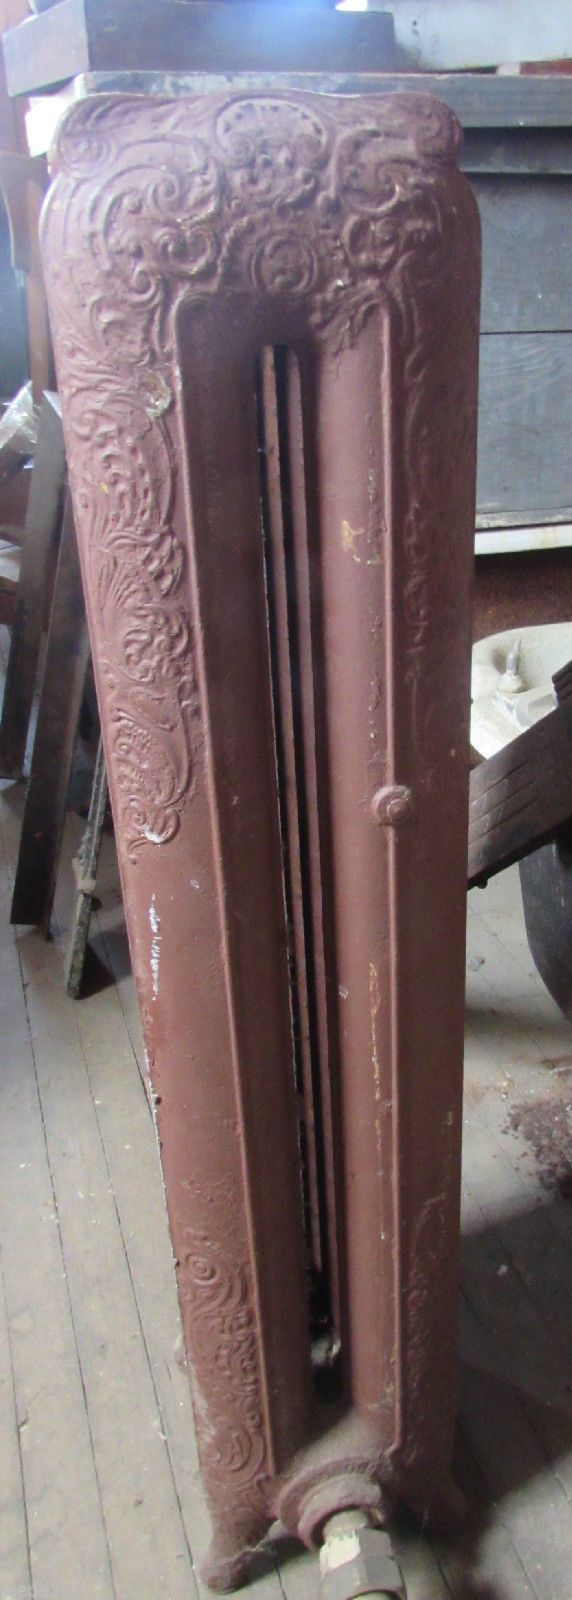 nice American Victorian Cast Iron Steam Radiator Home Architectural Salvage Four Fin   Check more at http://harmonisproduction.com/american-victorian-cast-iron-steam-radiator-home-architectural-salvage-four-fin/